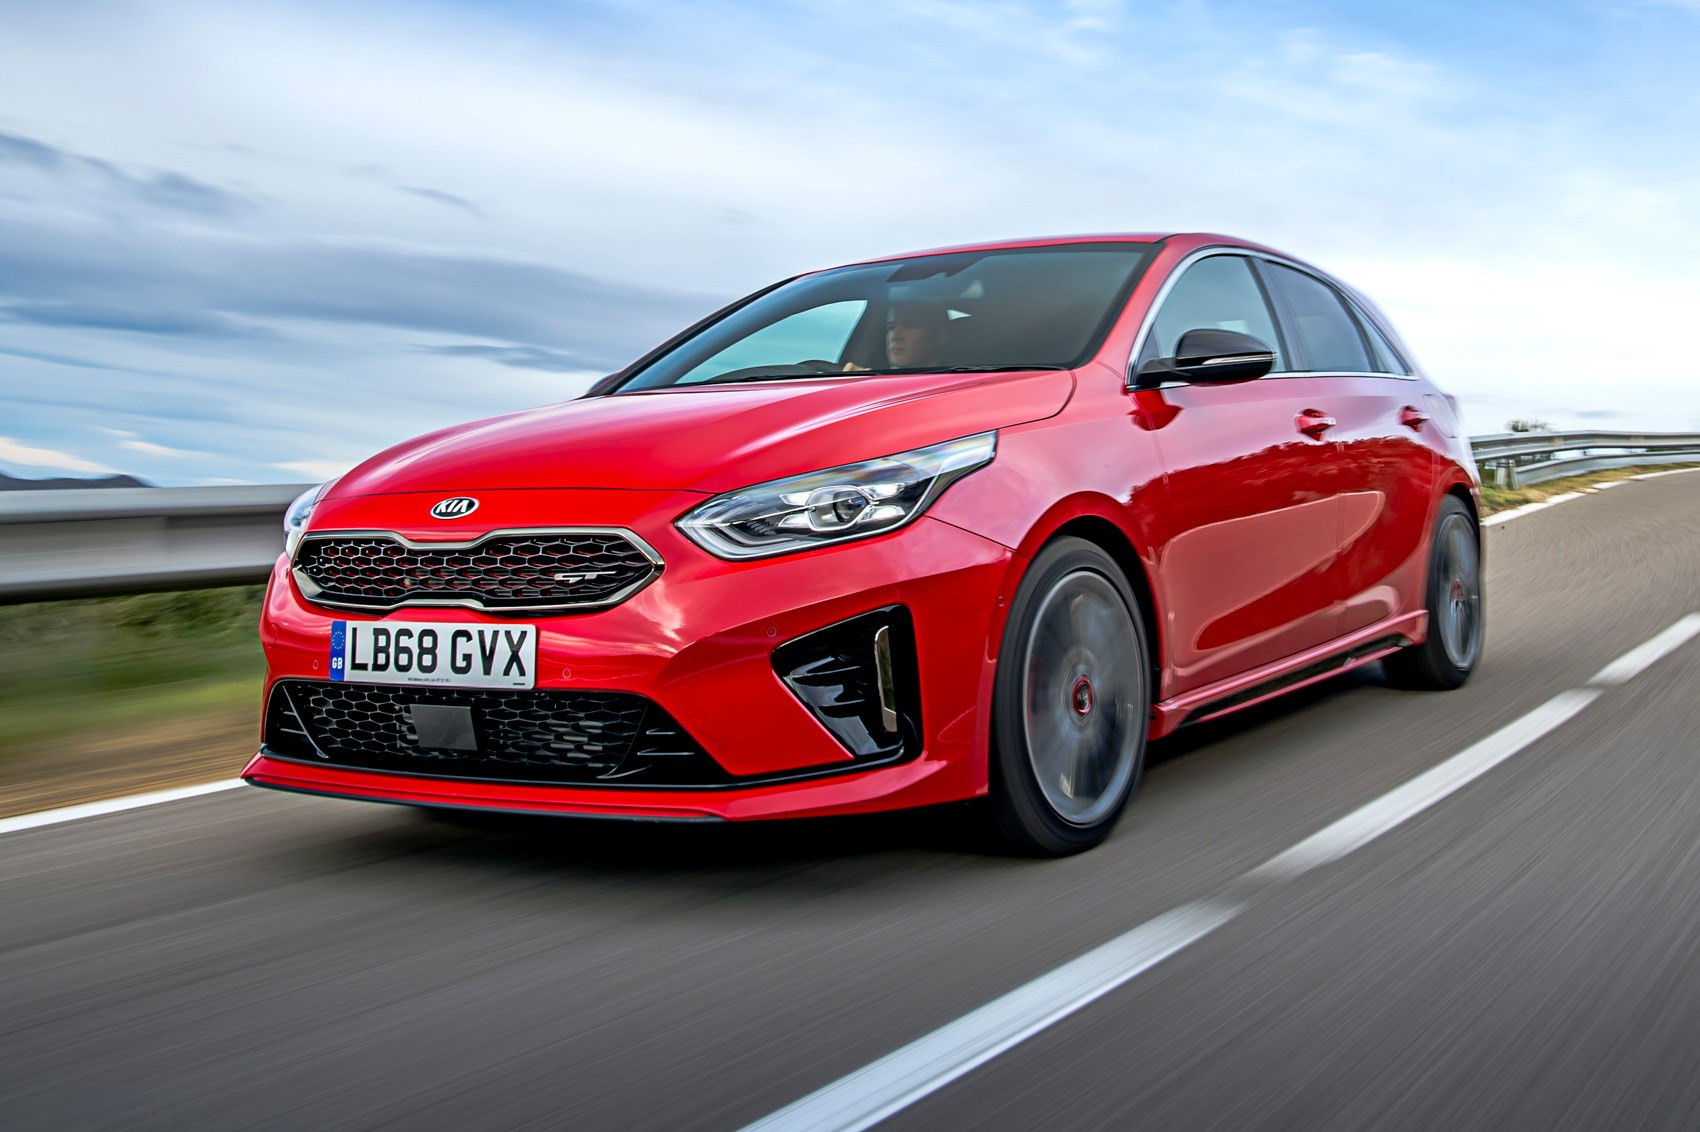 Subaru Lease Deals >> New Kia Ceed review: specs, prices, road test | CAR Magazine